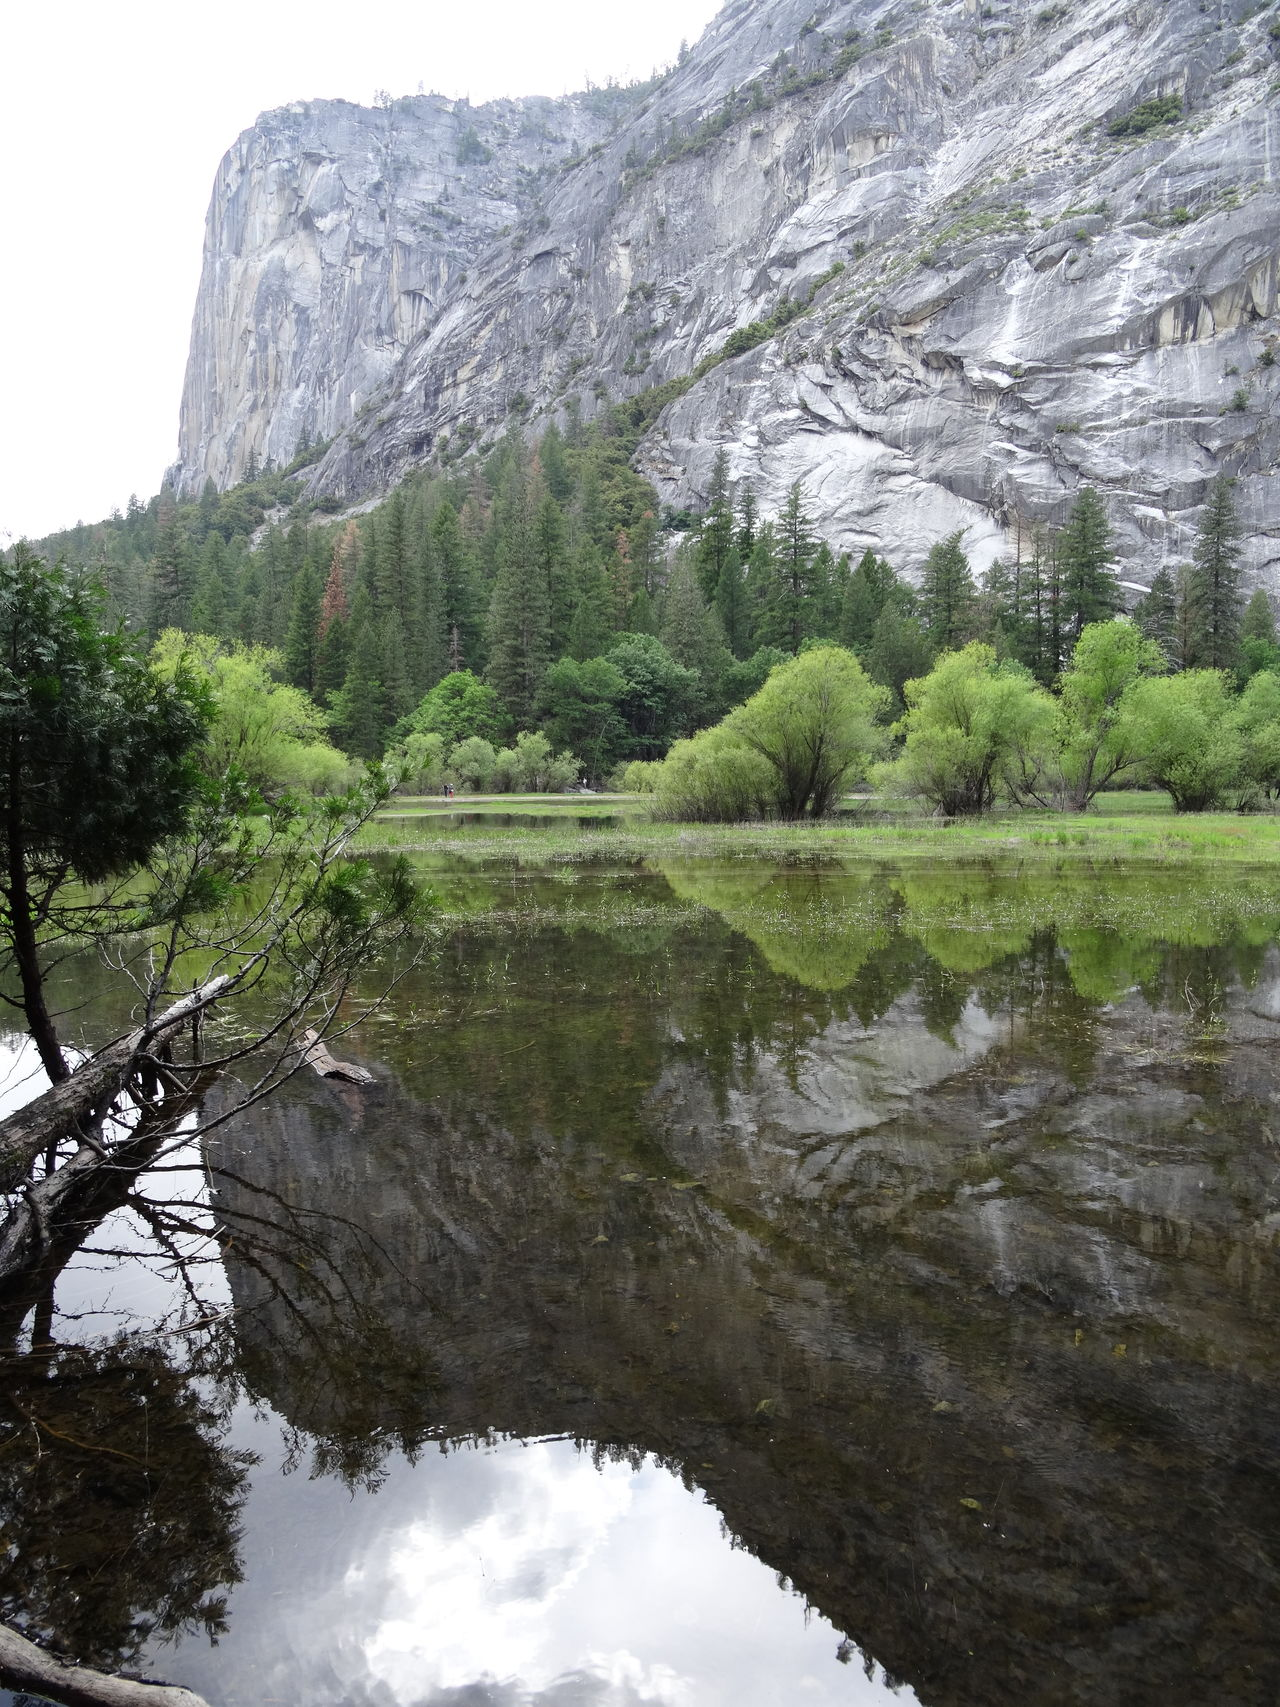 Beauty In Nature Day Forest Green Color Growth Lake Mirror Lake Mountain Nature No People Outdoors Reflection Scenics Sky Tranquility Tree Trees USA Water Water Reflections Yosemite Yosemite National Park